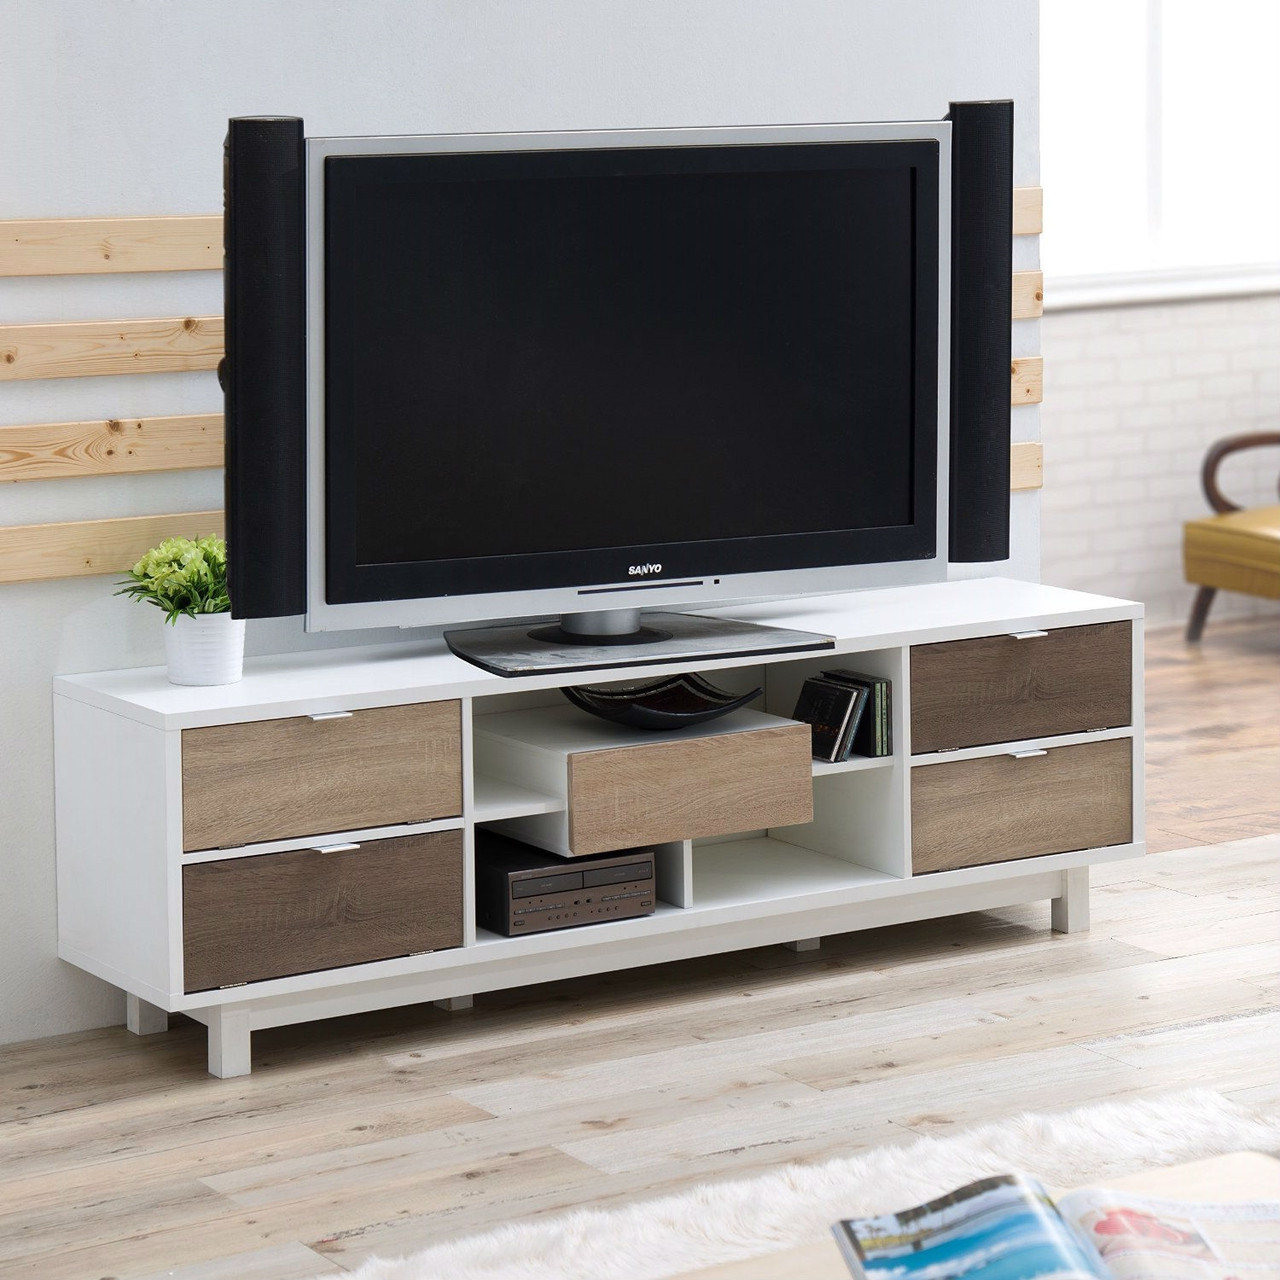 70 inch white tv stand entertainment center natural wood accents. Black Bedroom Furniture Sets. Home Design Ideas